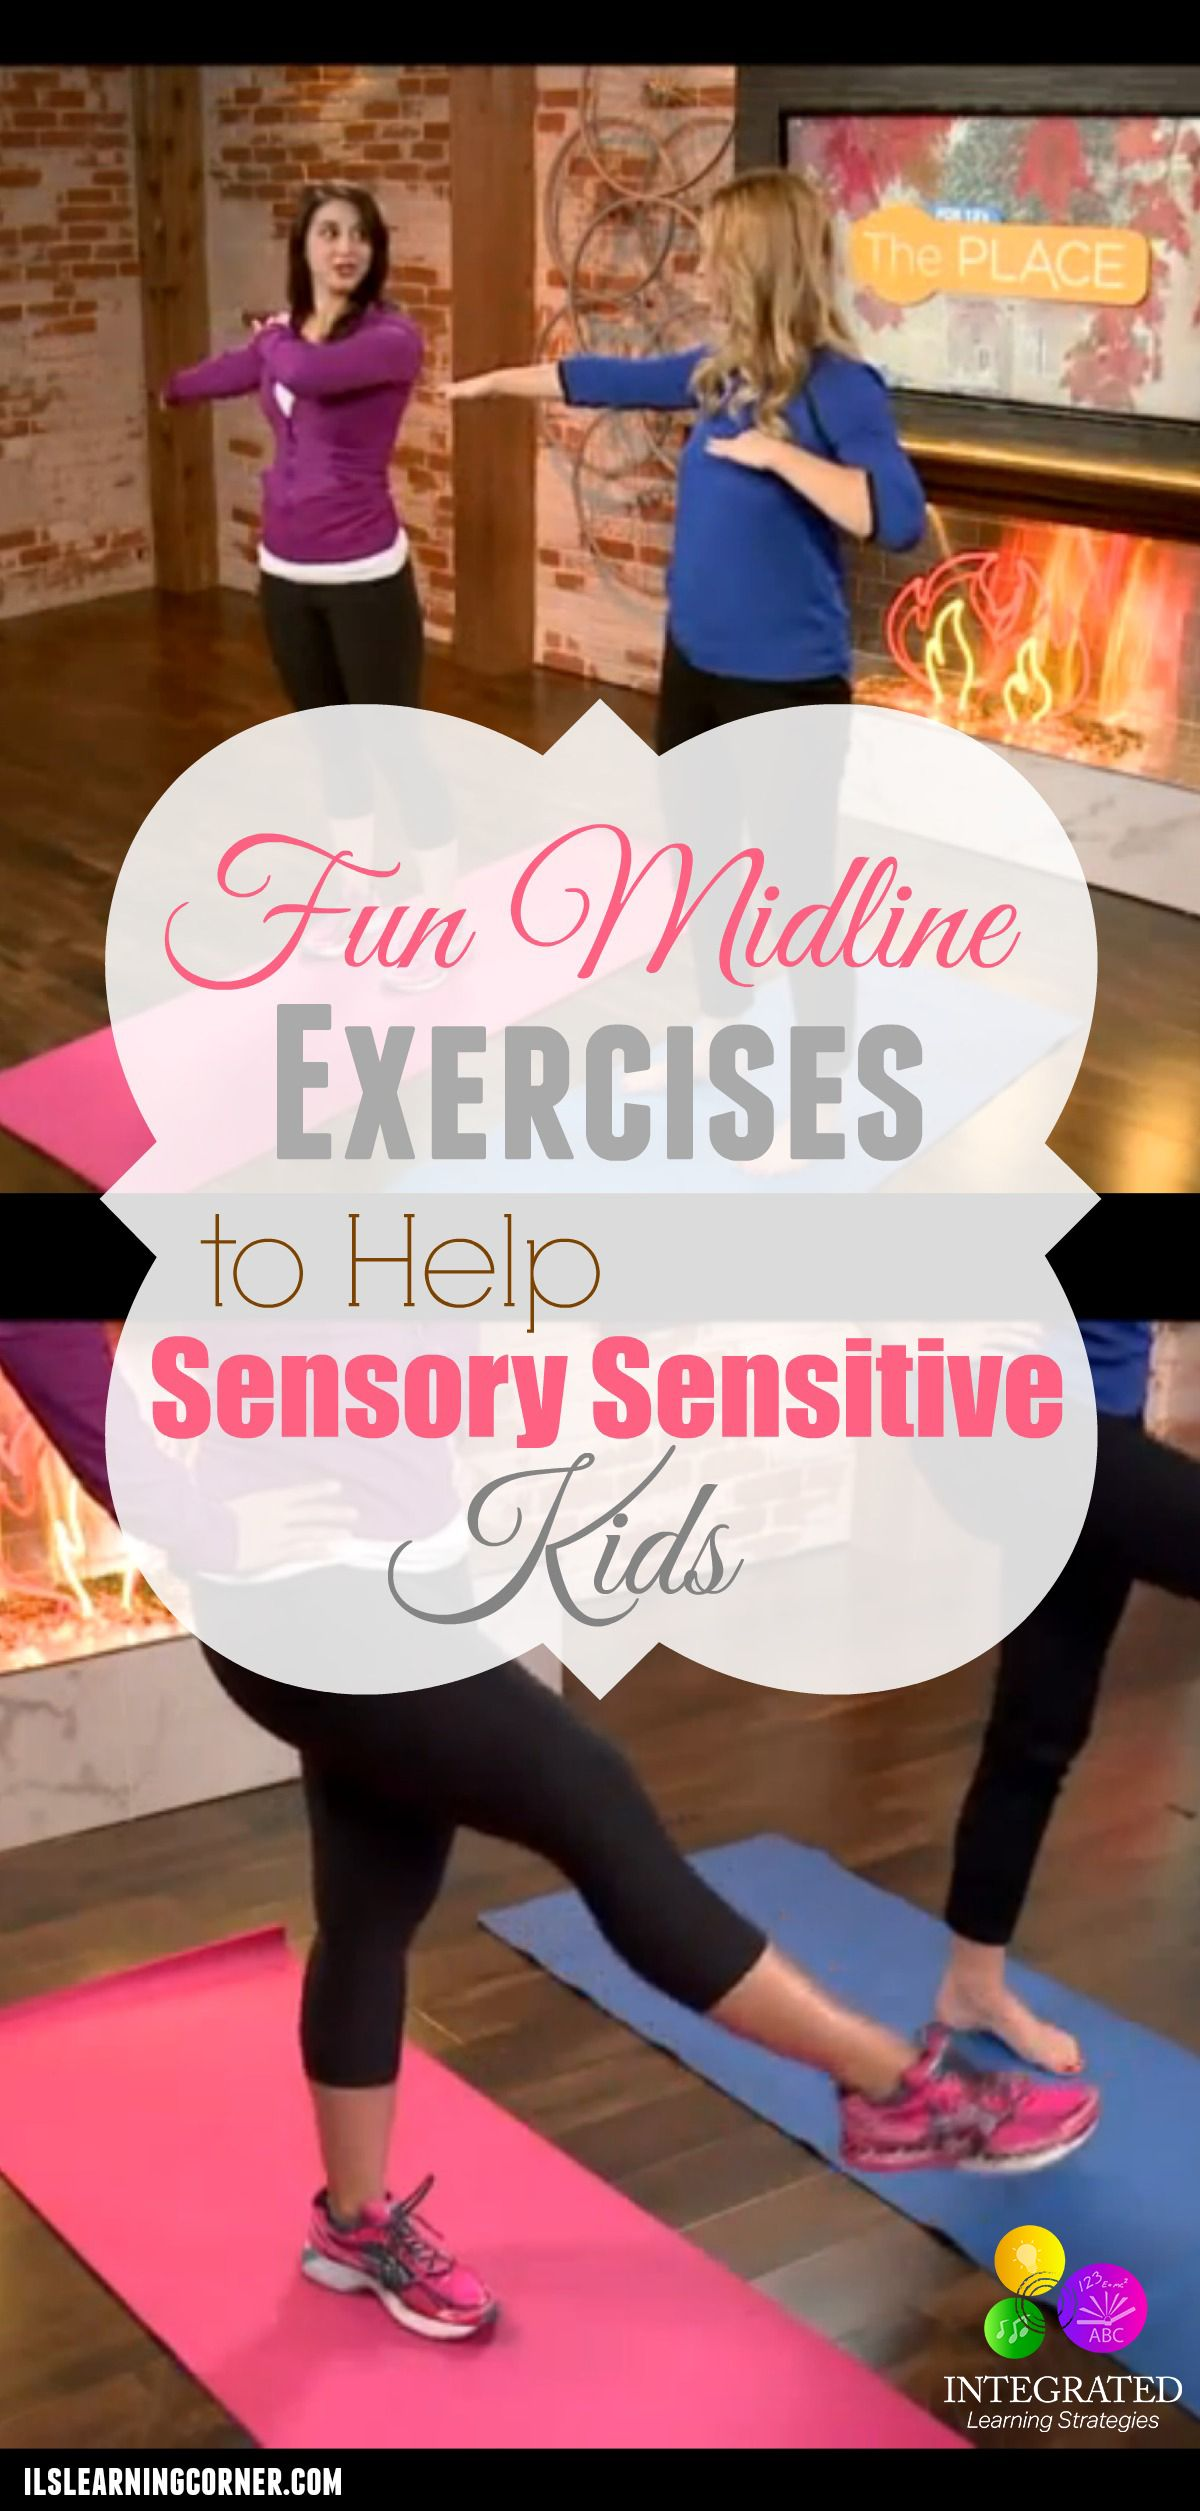 Fox 13 S The Place Crossing The Midline Exercises For Brain And Sensory Integration